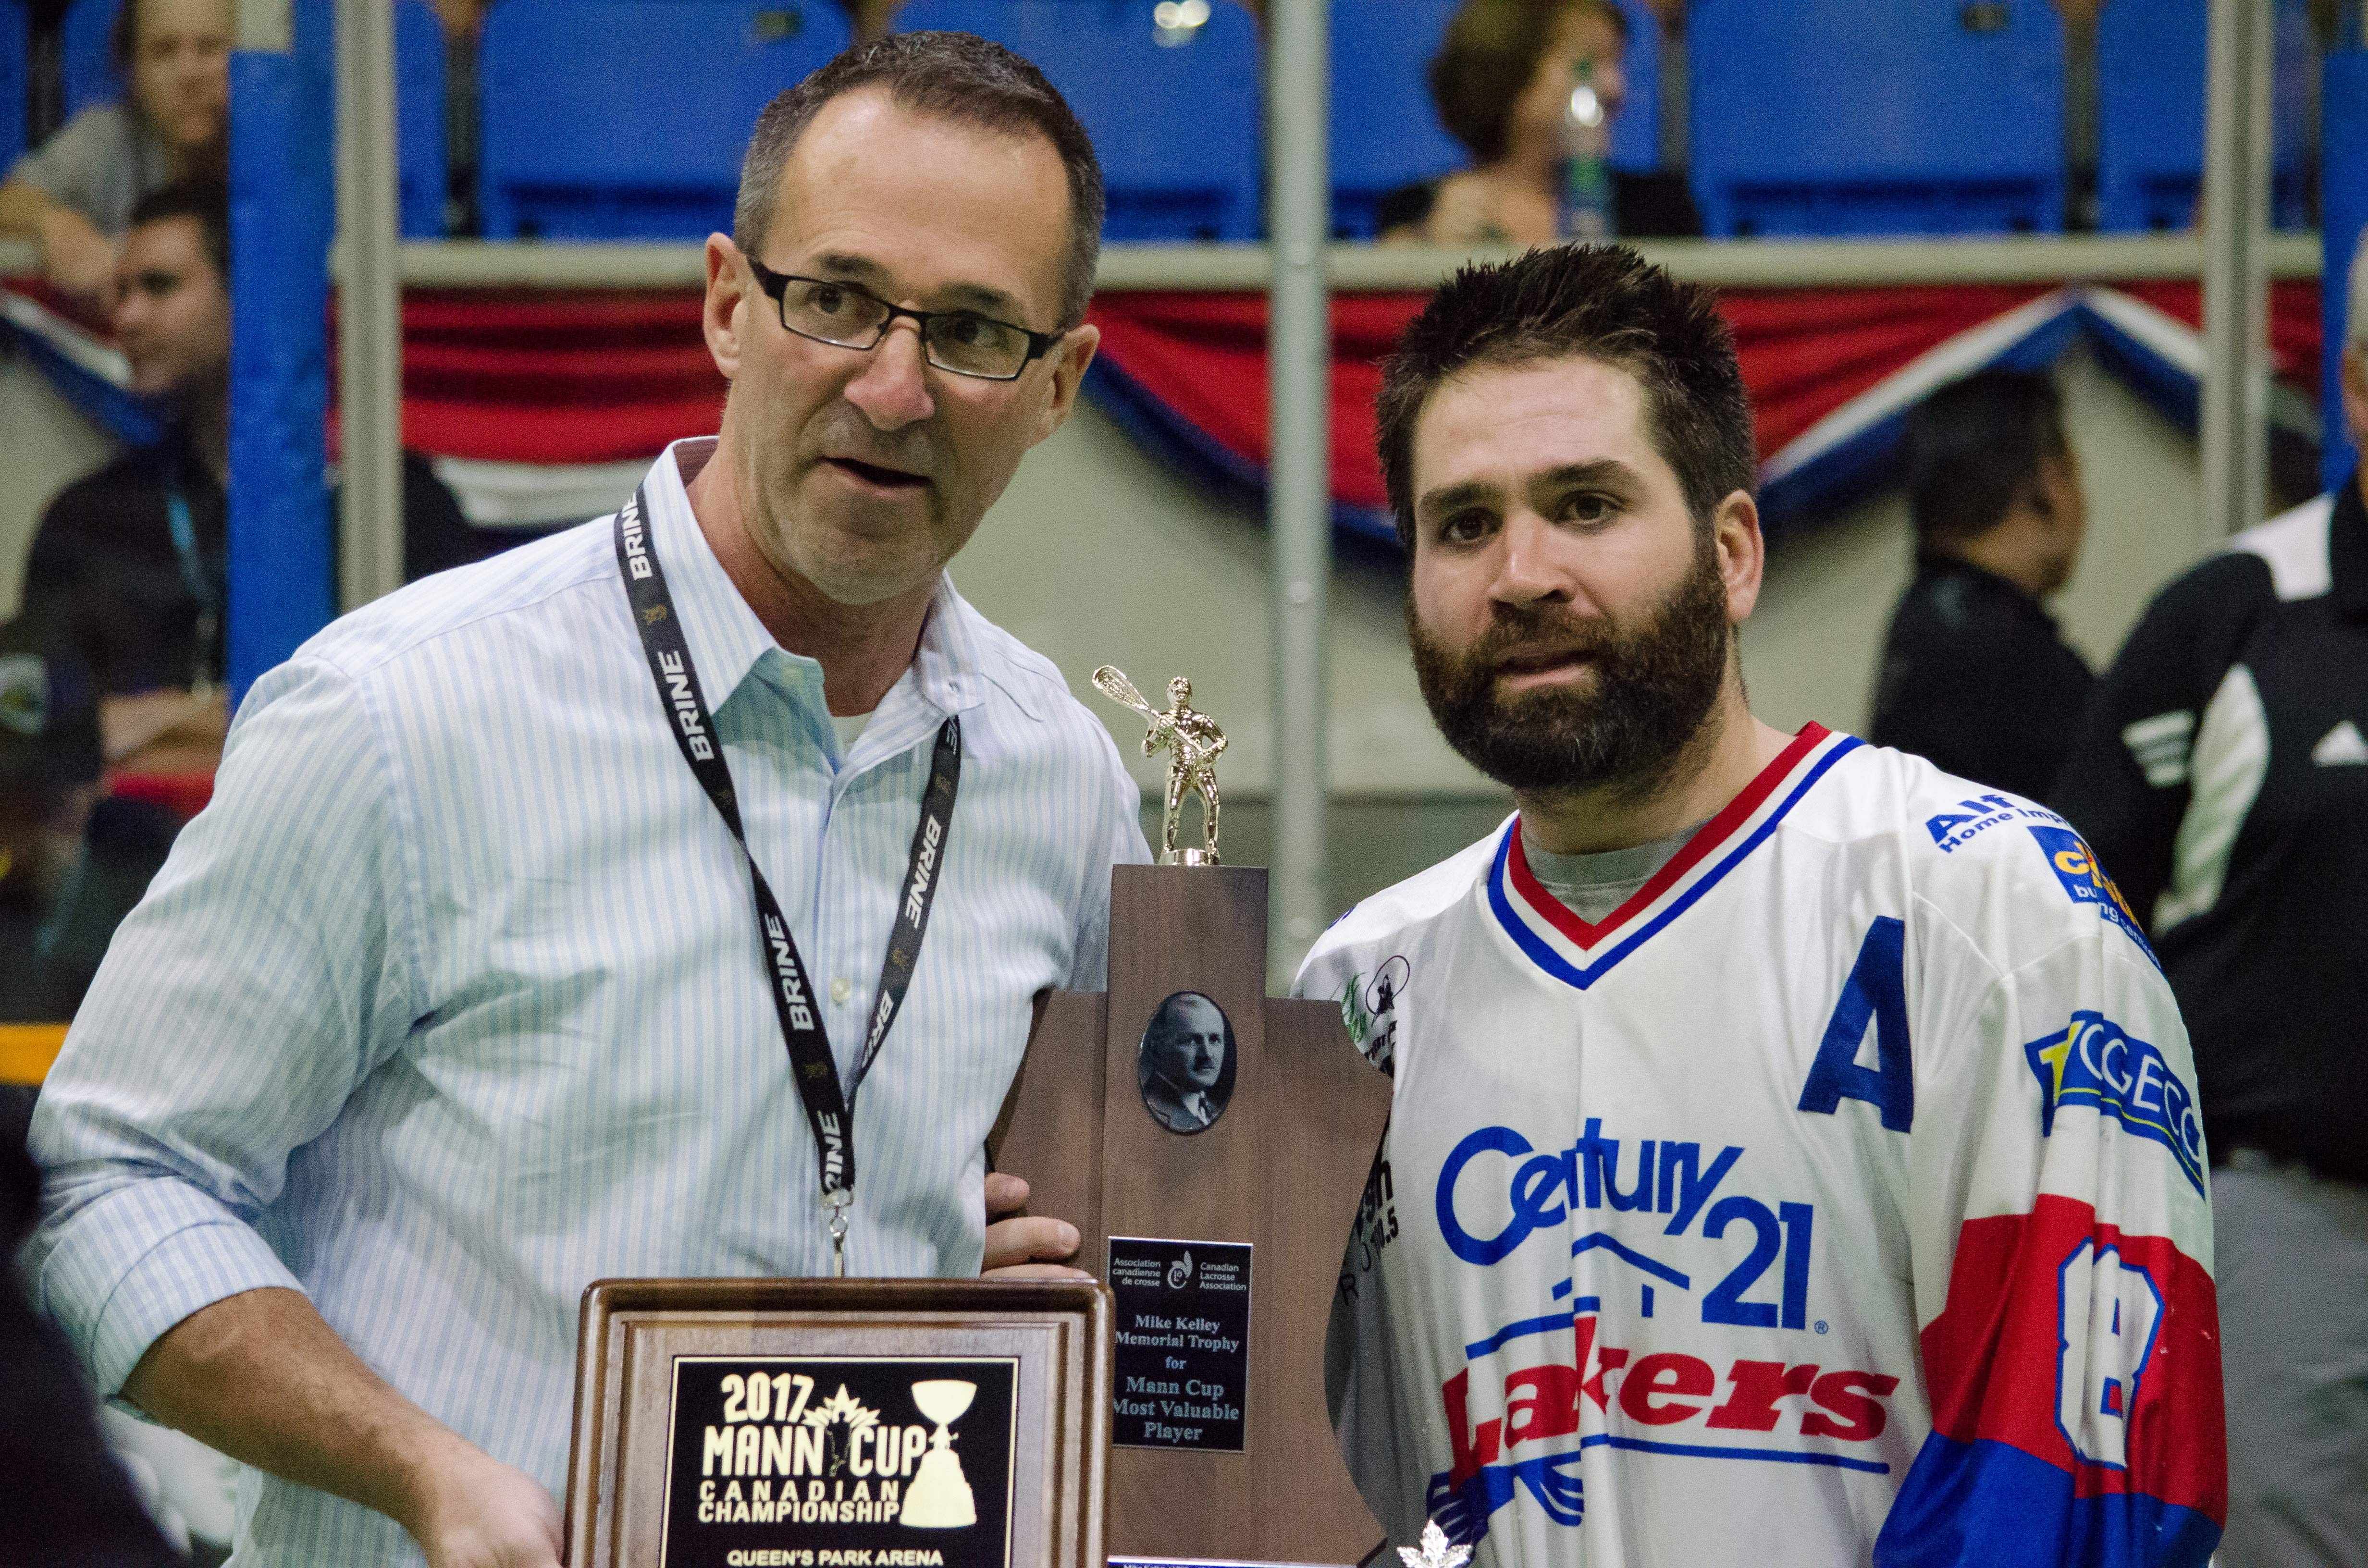 WLA commissioner Paul Dal Monte presents the Peterborough Lakers' Shawn Evans with the Mike Kelley award as Mann Cup MVP. (Photo credit: Kendall Taylor)